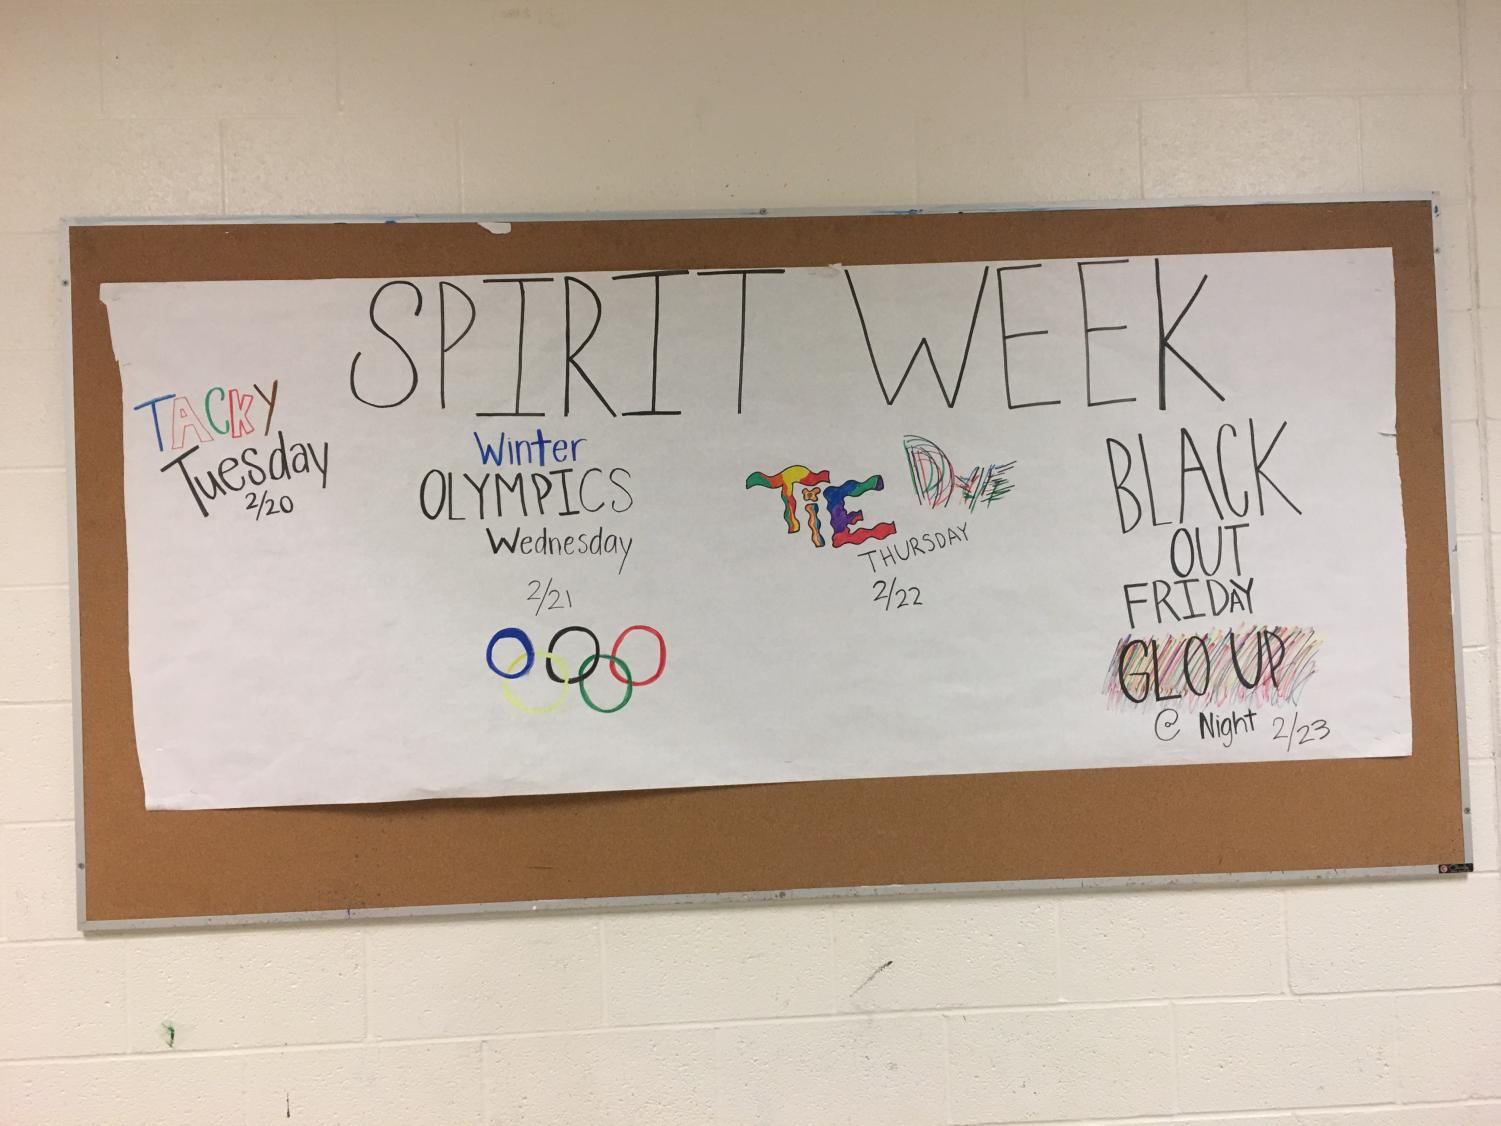 Spirit week for the week of 2/20 is shown above. Students aren't participating in Spirit Week as much as they used to